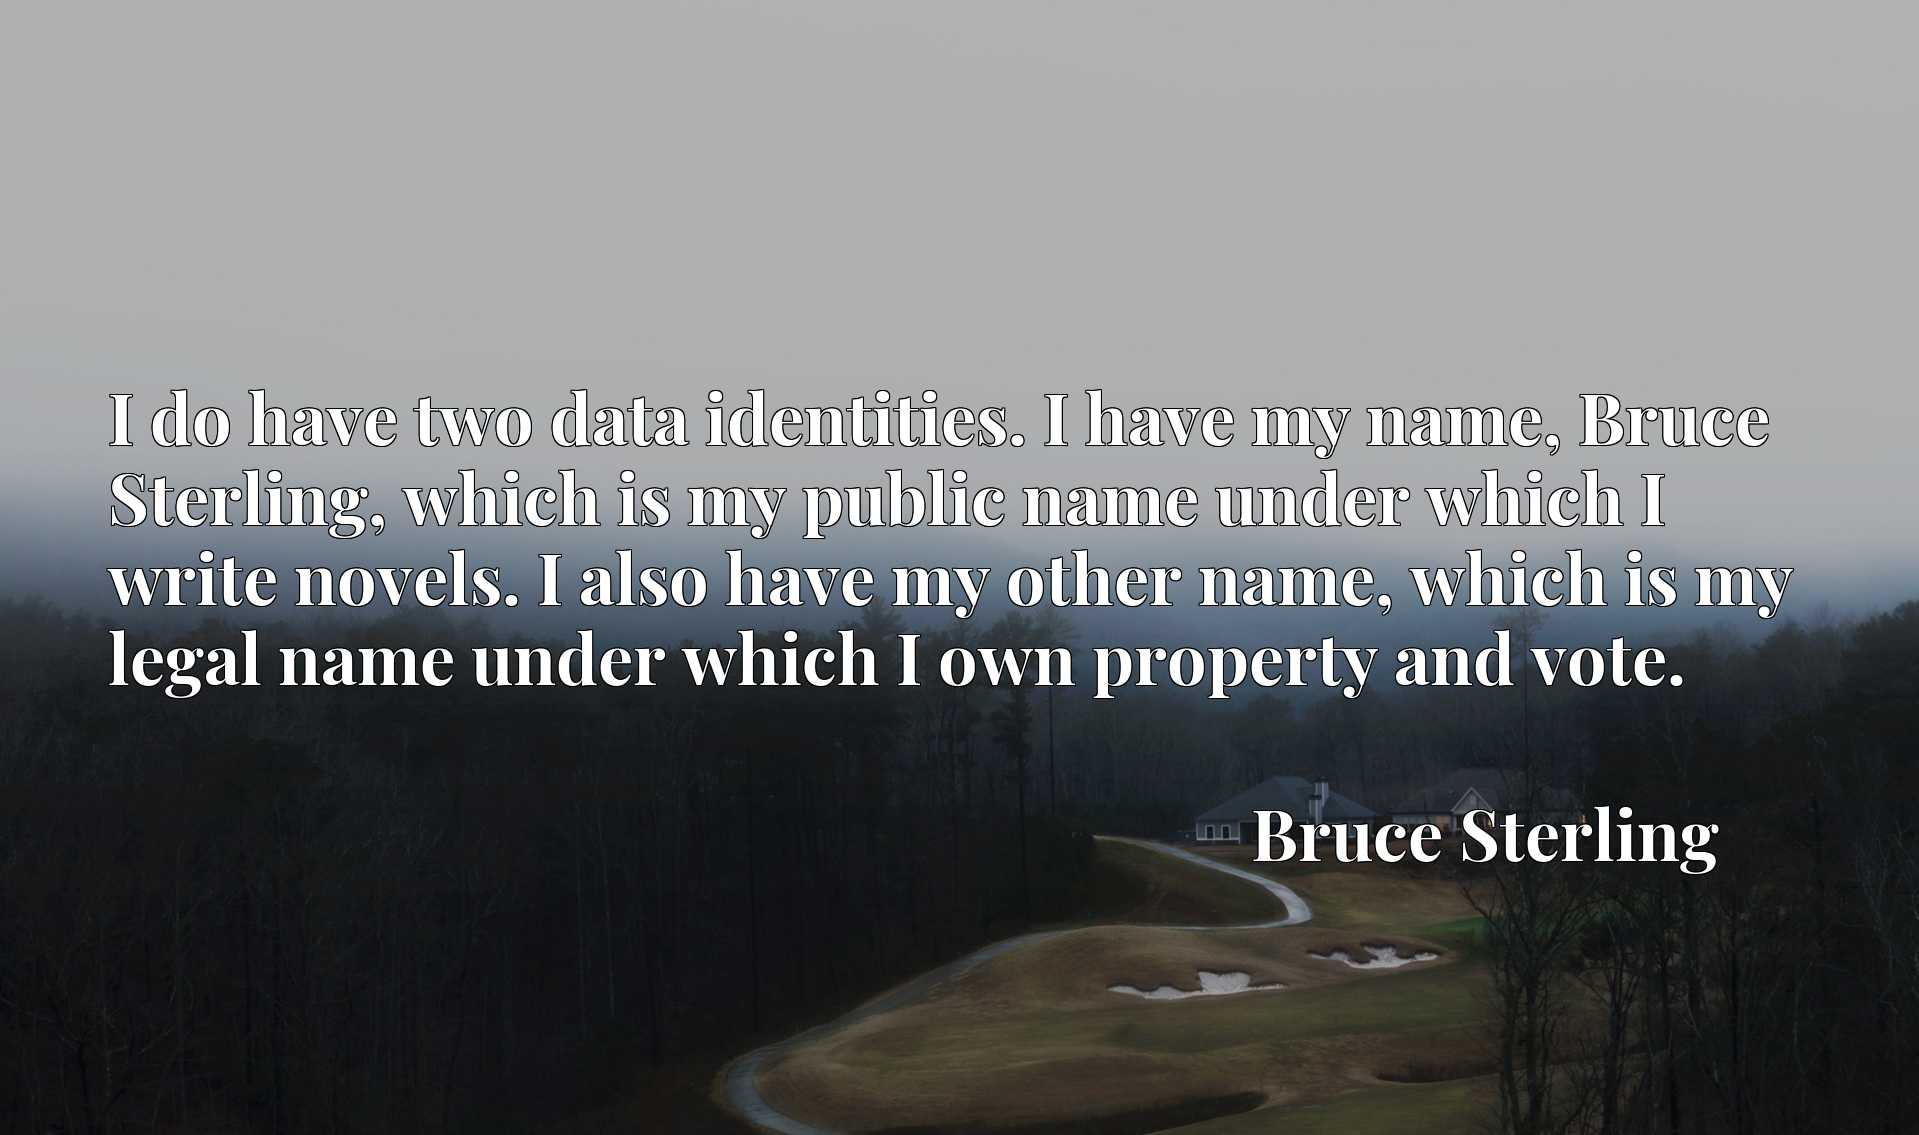 I do have two data identities. I have my name, Bruce Sterling, which is my public name under which I write novels. I also have my other name, which is my legal name under which I own property and vote.